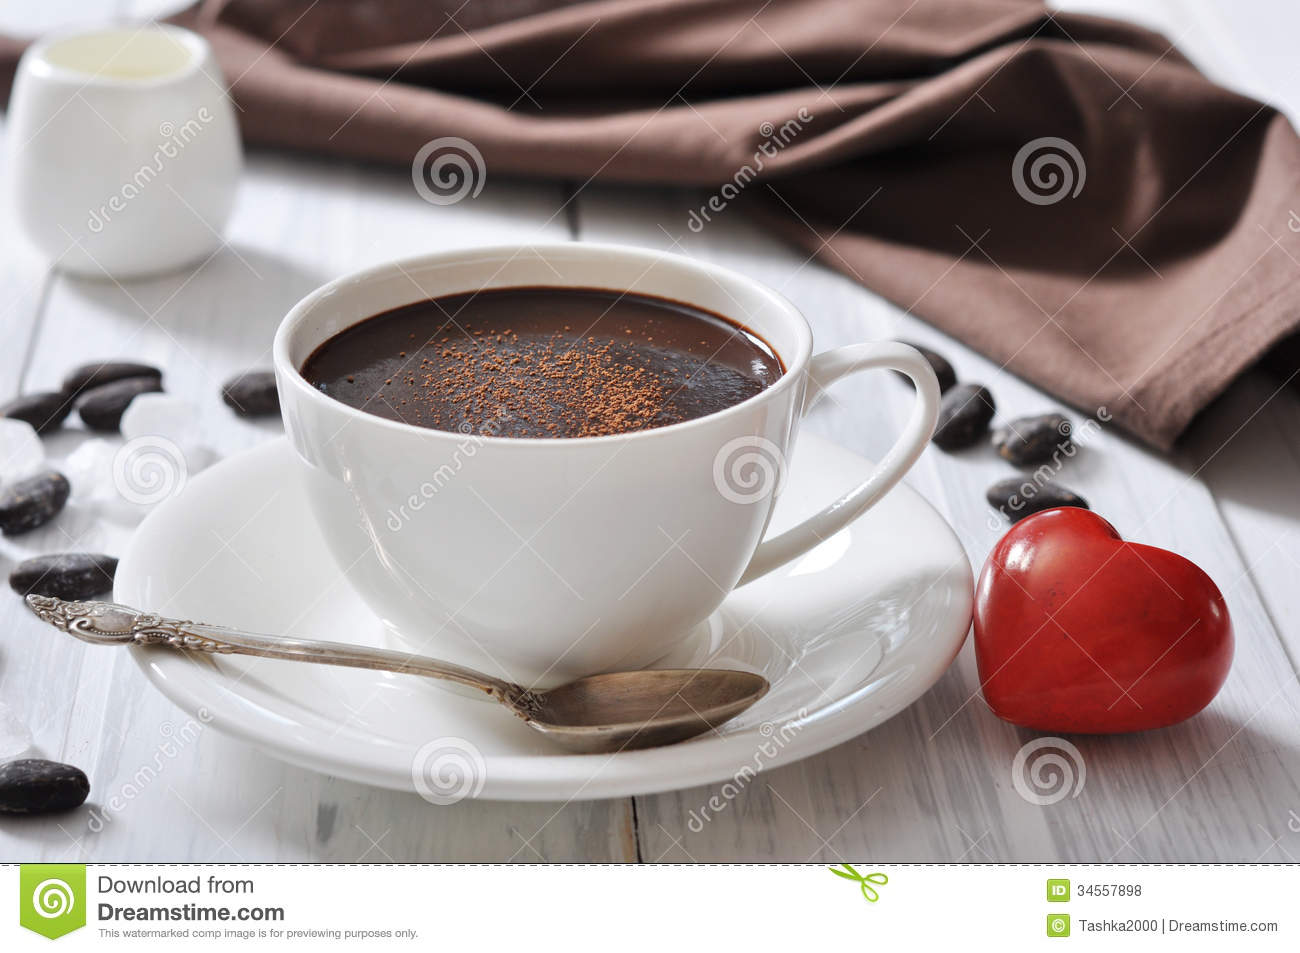 ... in cup with cocoa powder and red stone heart on wooden background